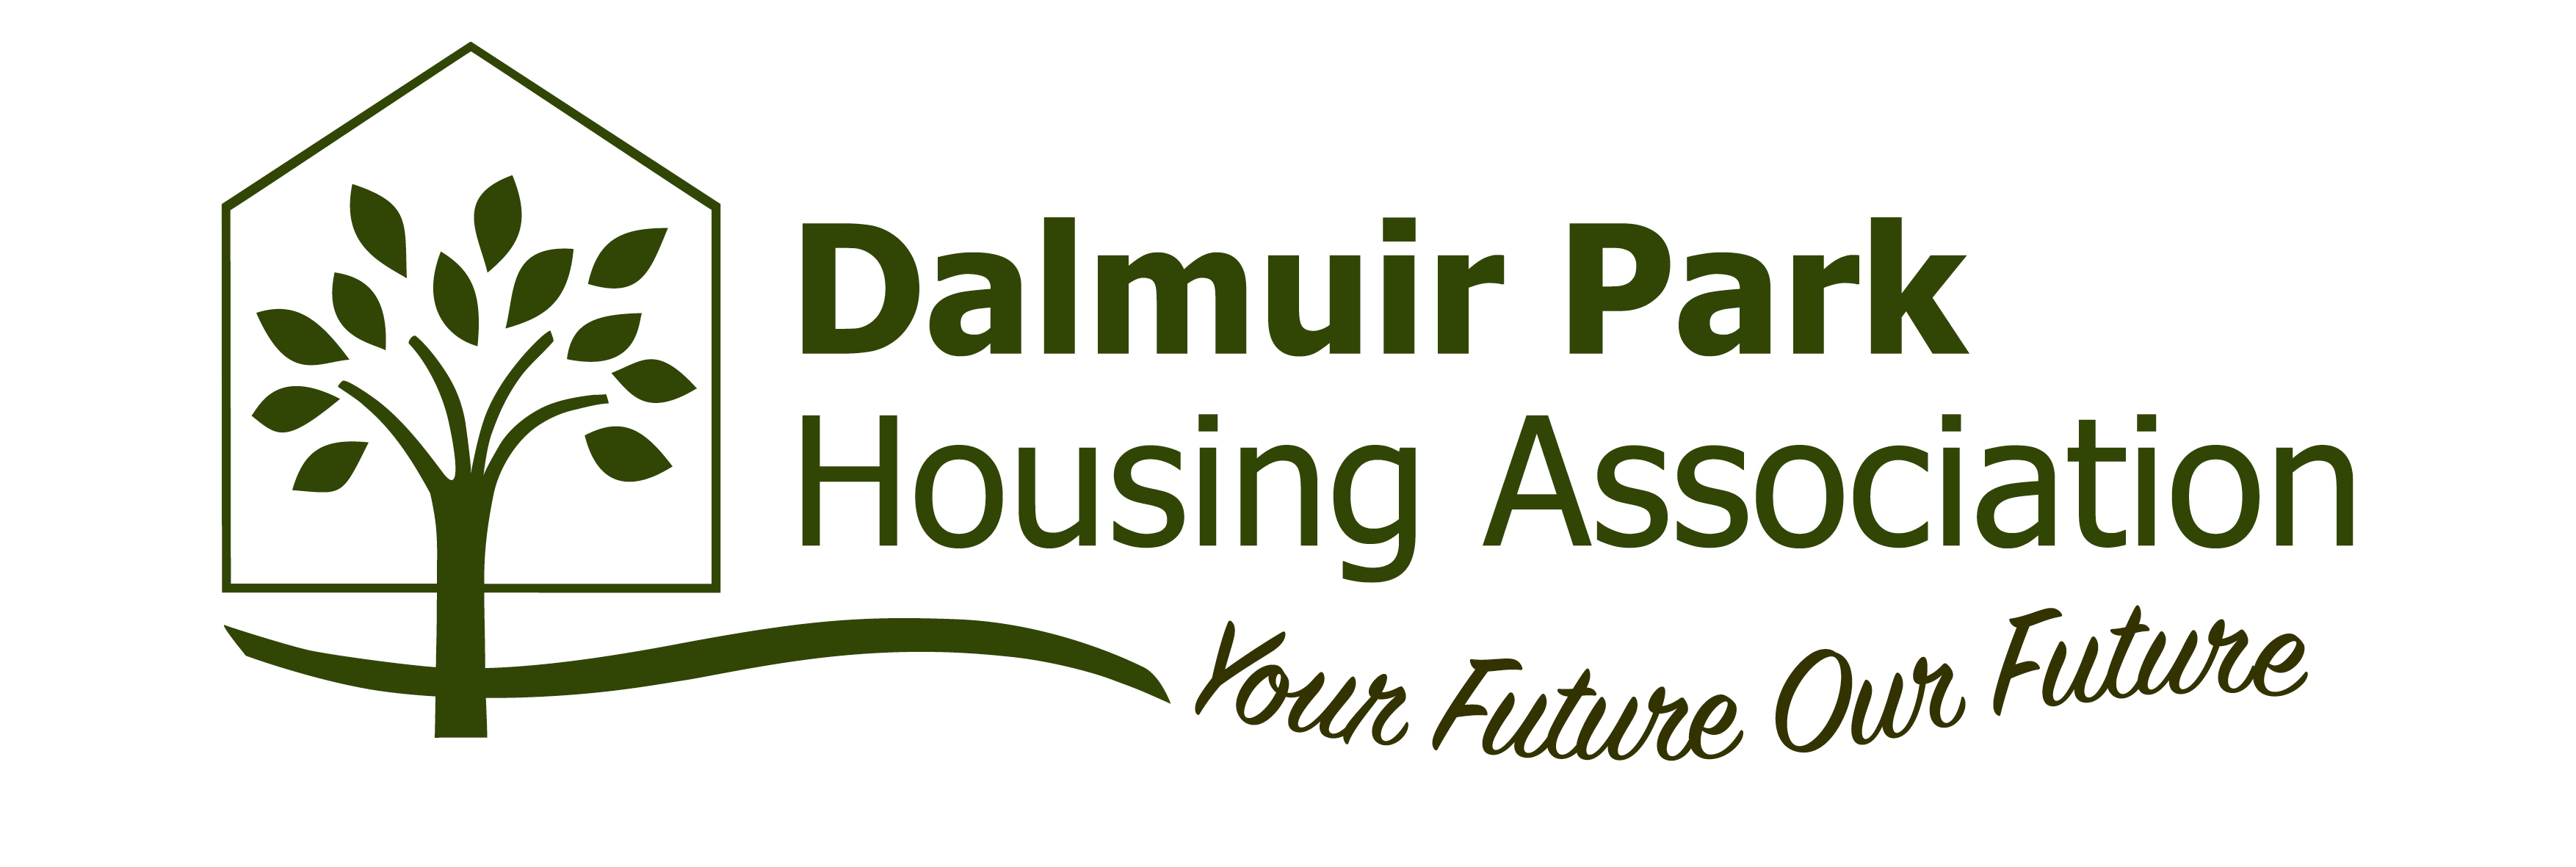 Dalmuir Park Housing Association